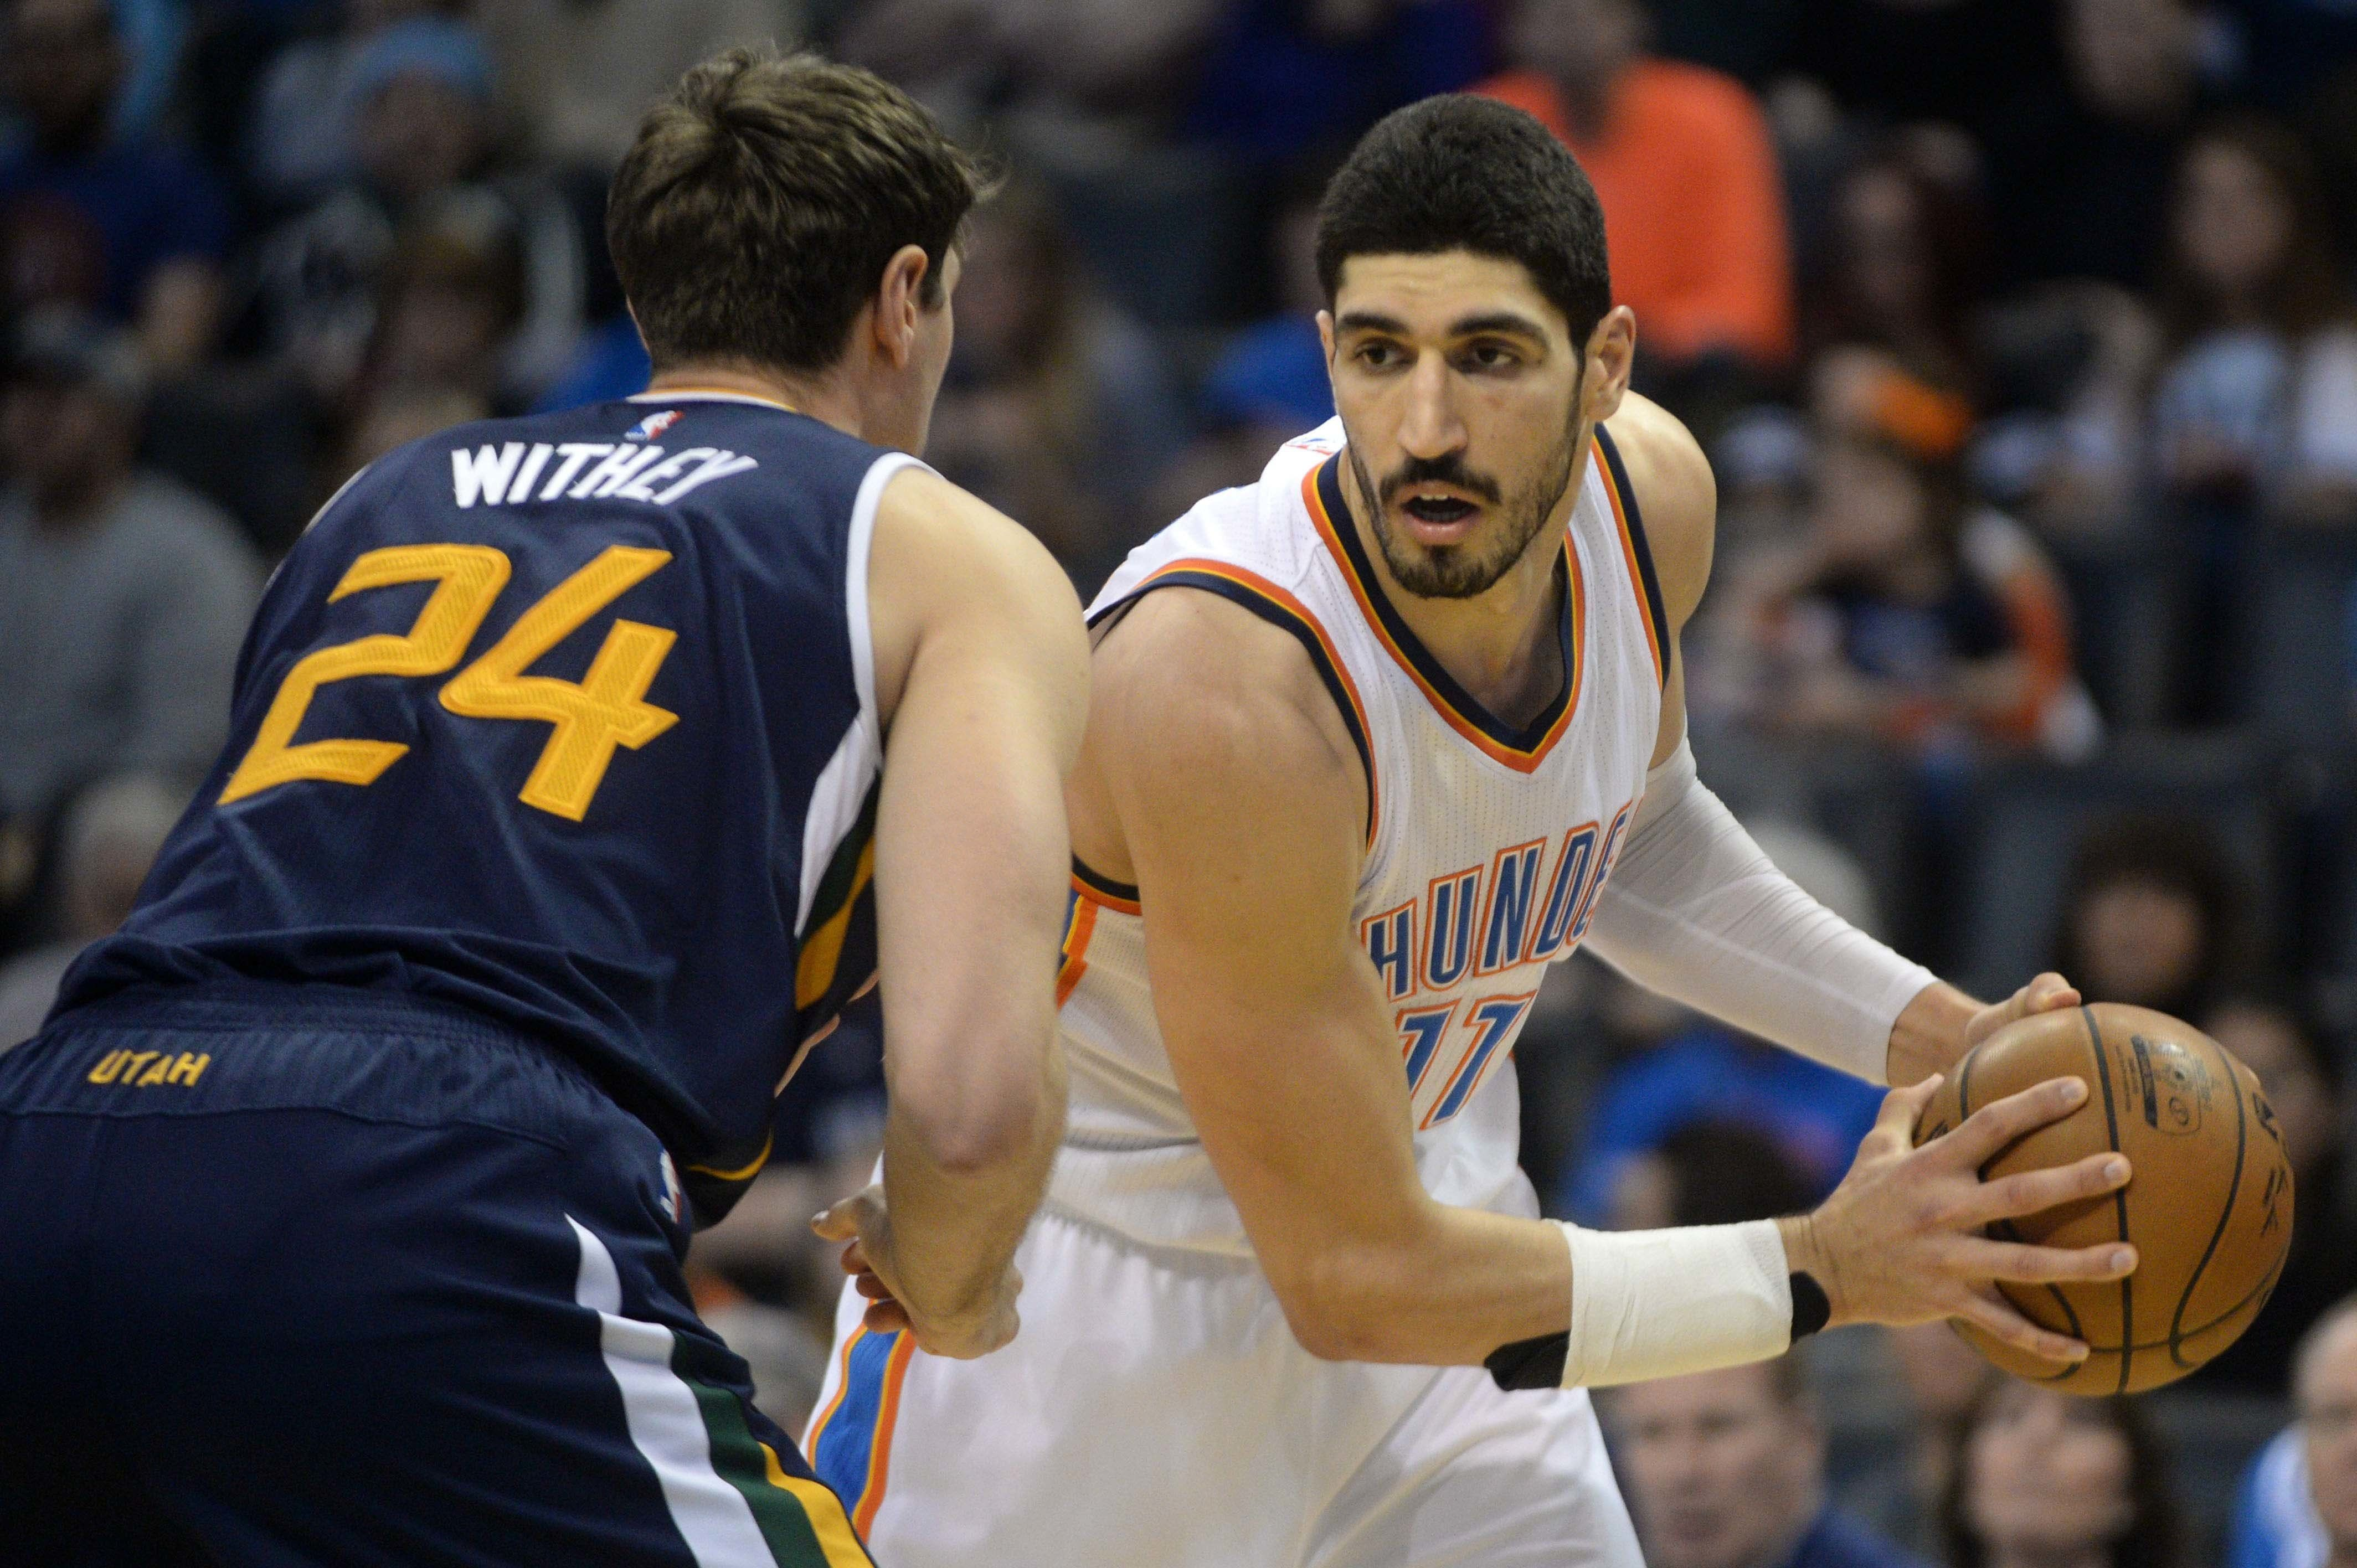 Mar 11, 2017; Oklahoma City, OK, USA; Oklahoma City Thunder center Enes Kanter (11) drives to the basket in front of Utah Jazz center Jeff Withey (24) during the second quarter at Chesapeake Energy Arena. Mandatory Credit: Mark D. Smith-USA TODAY Sports